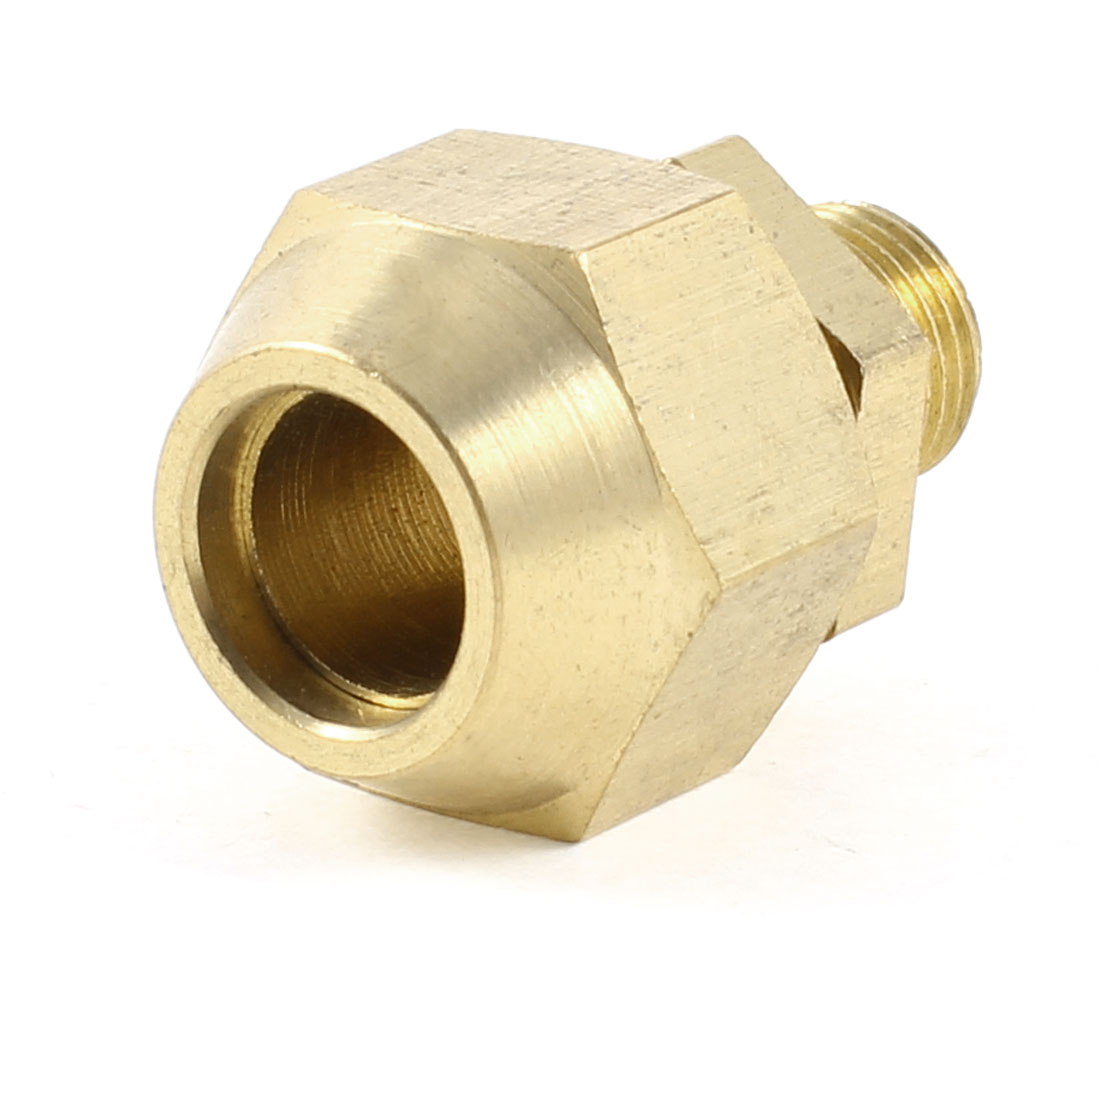 "10mm x 1/8"" PT Male Threaded Metal Adapter Hose Quick Joint Connector Gold Tone"